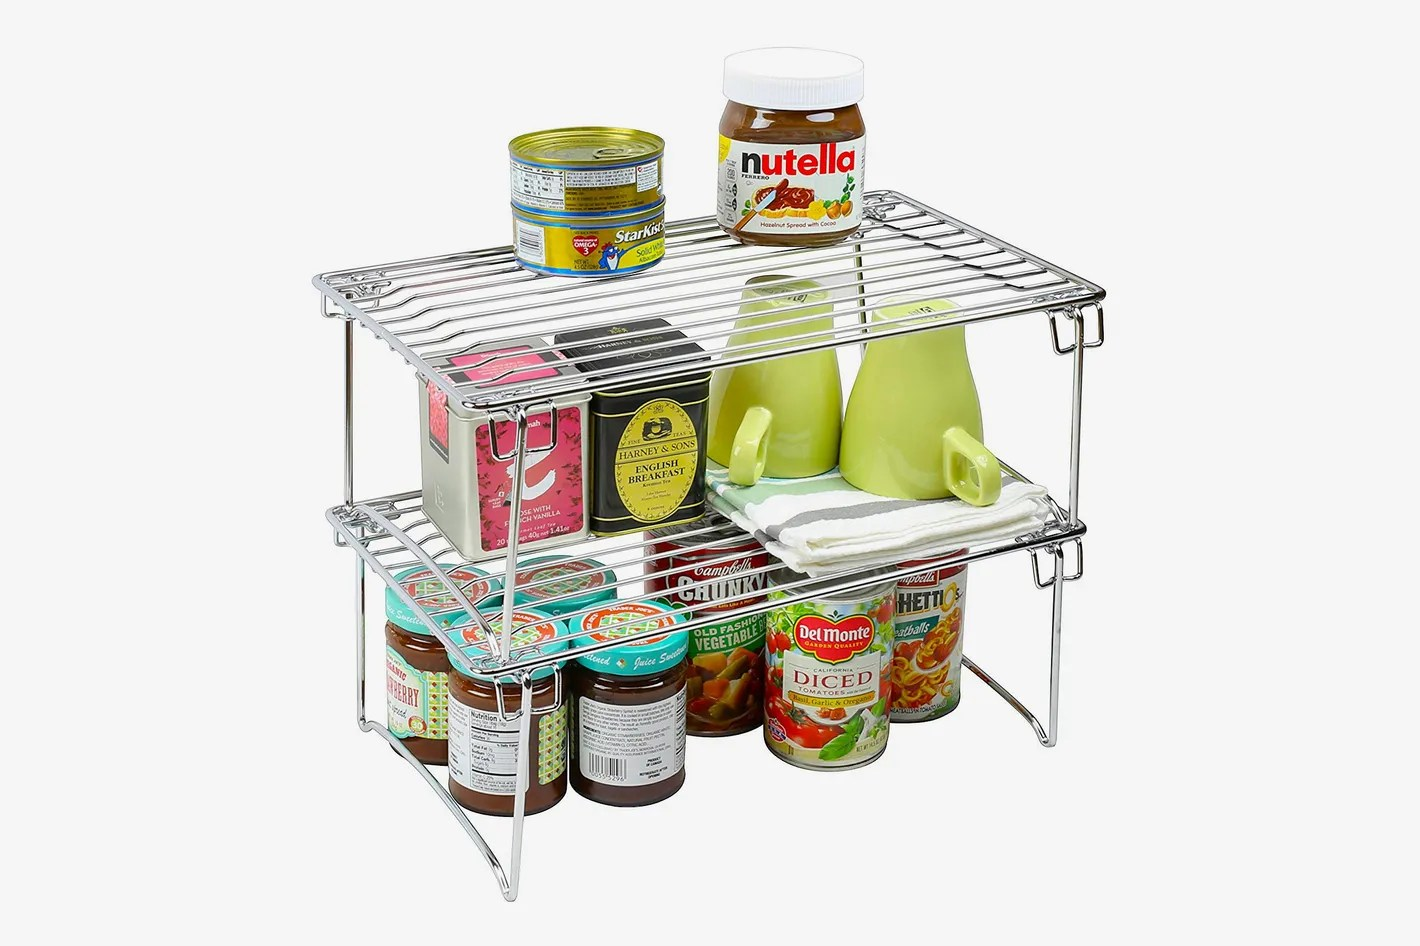 Kitchen Organizer Storage 19 Best Kitchen Cabinet Organizers On Amazon Reviewed 2019